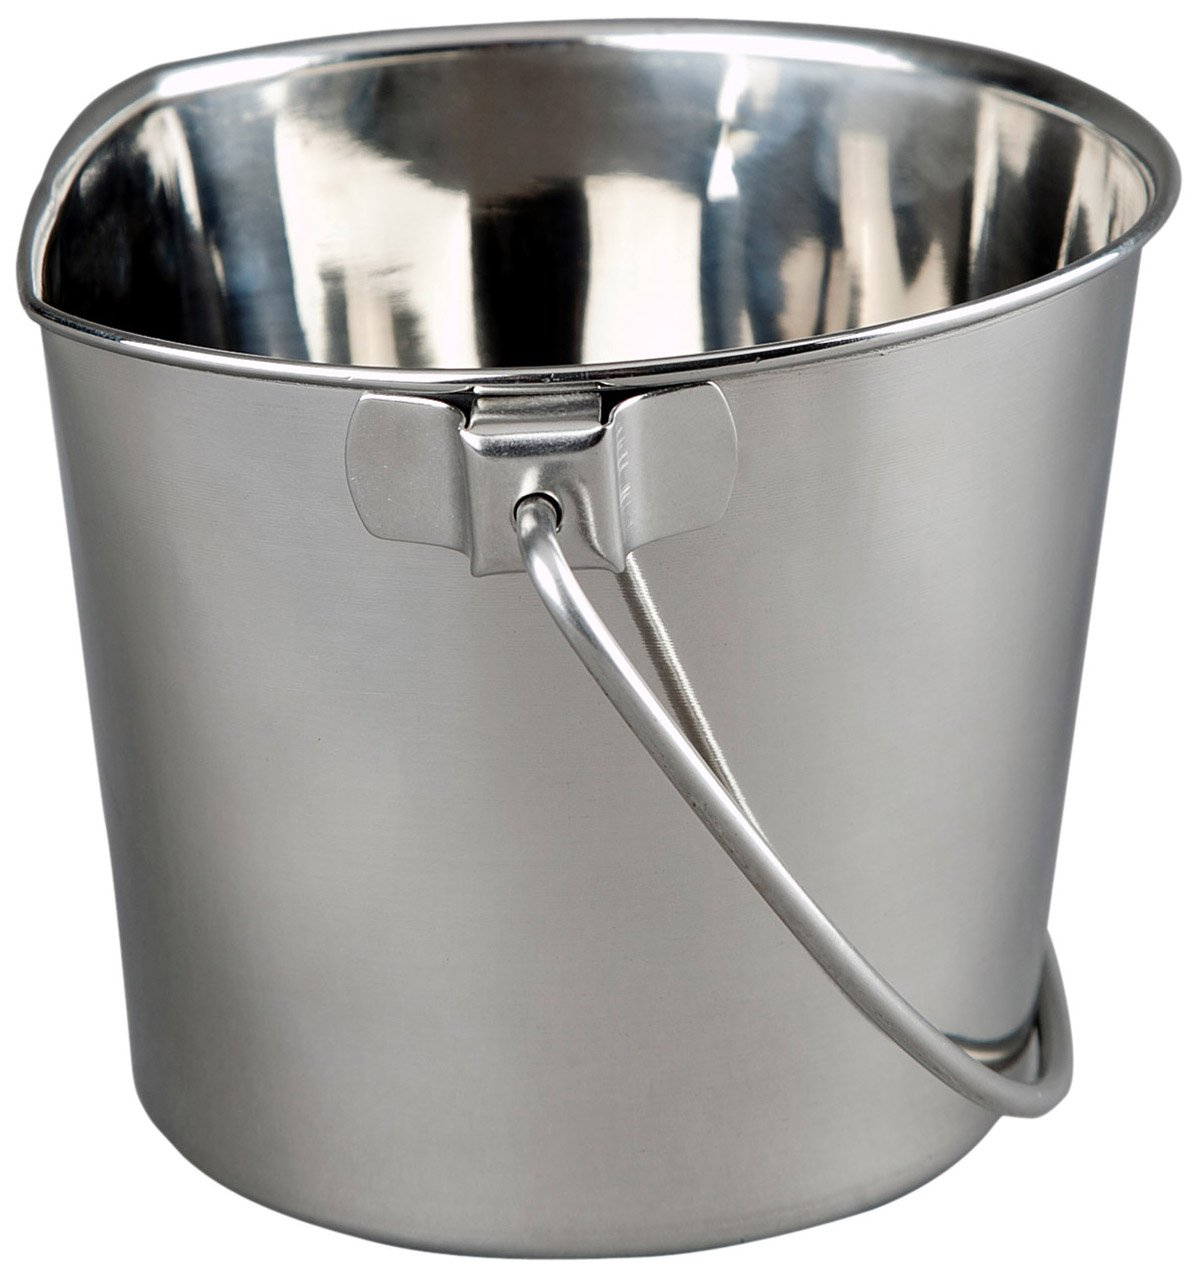 Advance Pet Products Heavy Stainless Steel Flat Side Bucket 4-Quart 2053